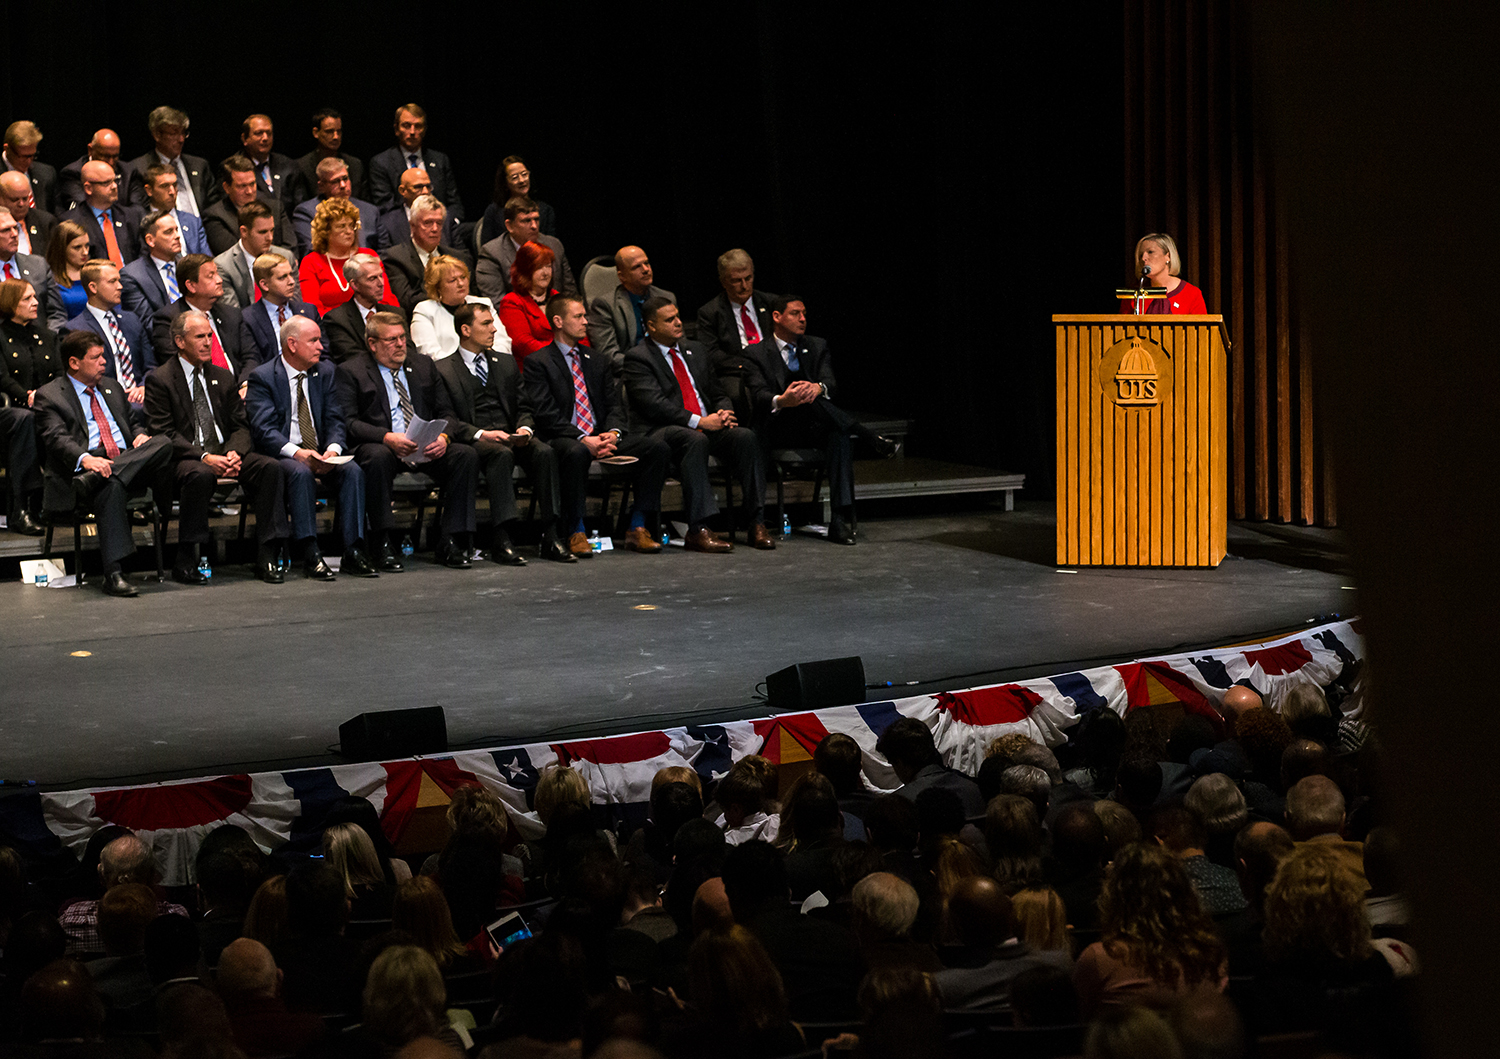 Illinois State Rep. Toni McCombie, R-Savanna, gives her nomination for Jim Durkin to be the Speaker of the Illinois House of Representatives during the inauguration ceremony for the Illinois House of Representatives for the 101st General Assembly at the University of Illinois Springfield's Sangamon Auditorium, Wednesday, Jan. 9, 2019, in Springfield, Ill. [Justin L. Fowler/The State Journal-Register]